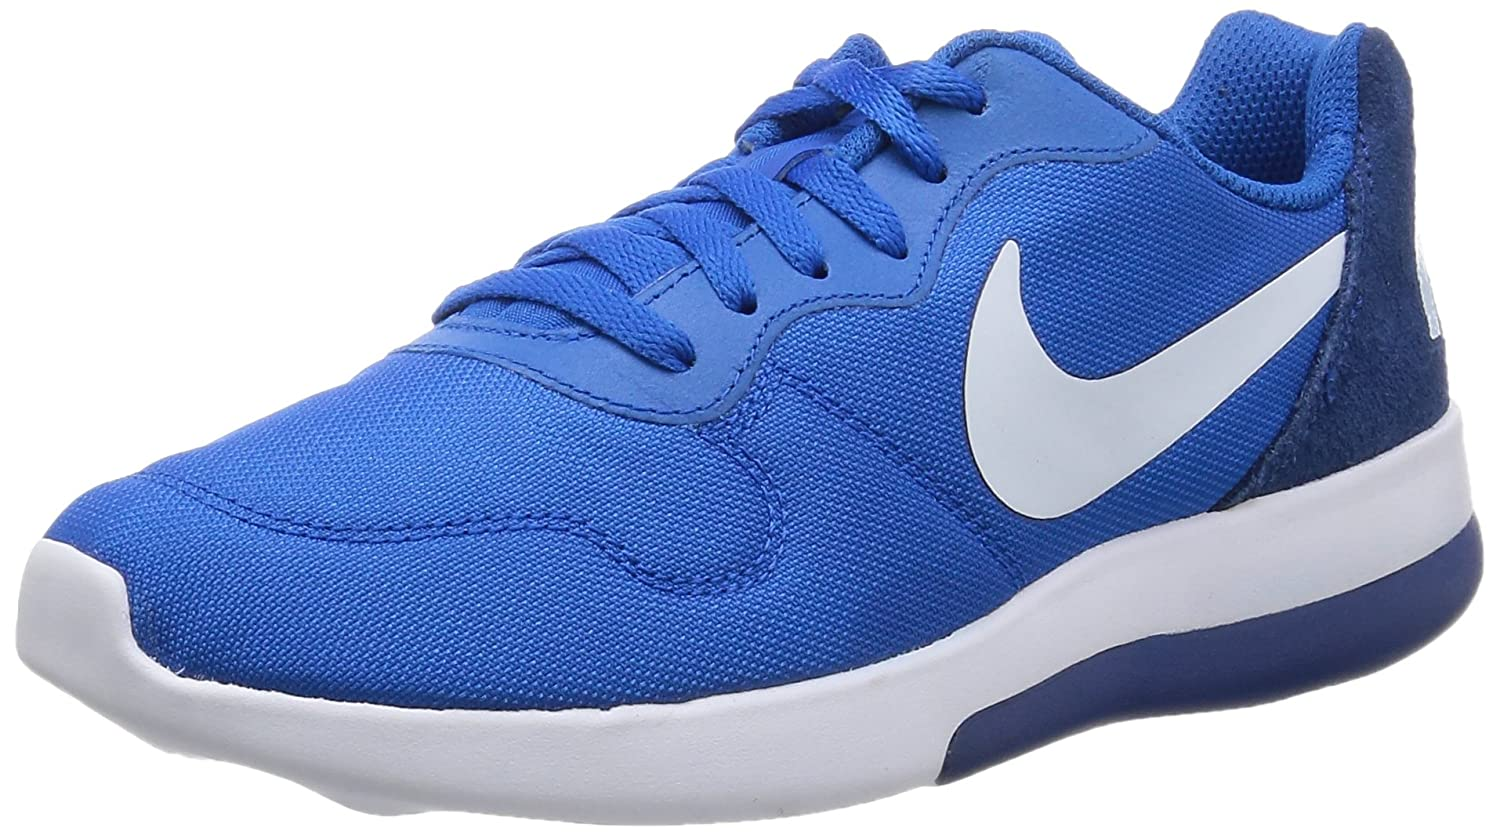 brand new 3dce1 7f046 Nike Women s 844901-400 Fitness Shoes  Amazon.co.uk  Shoes   Bags